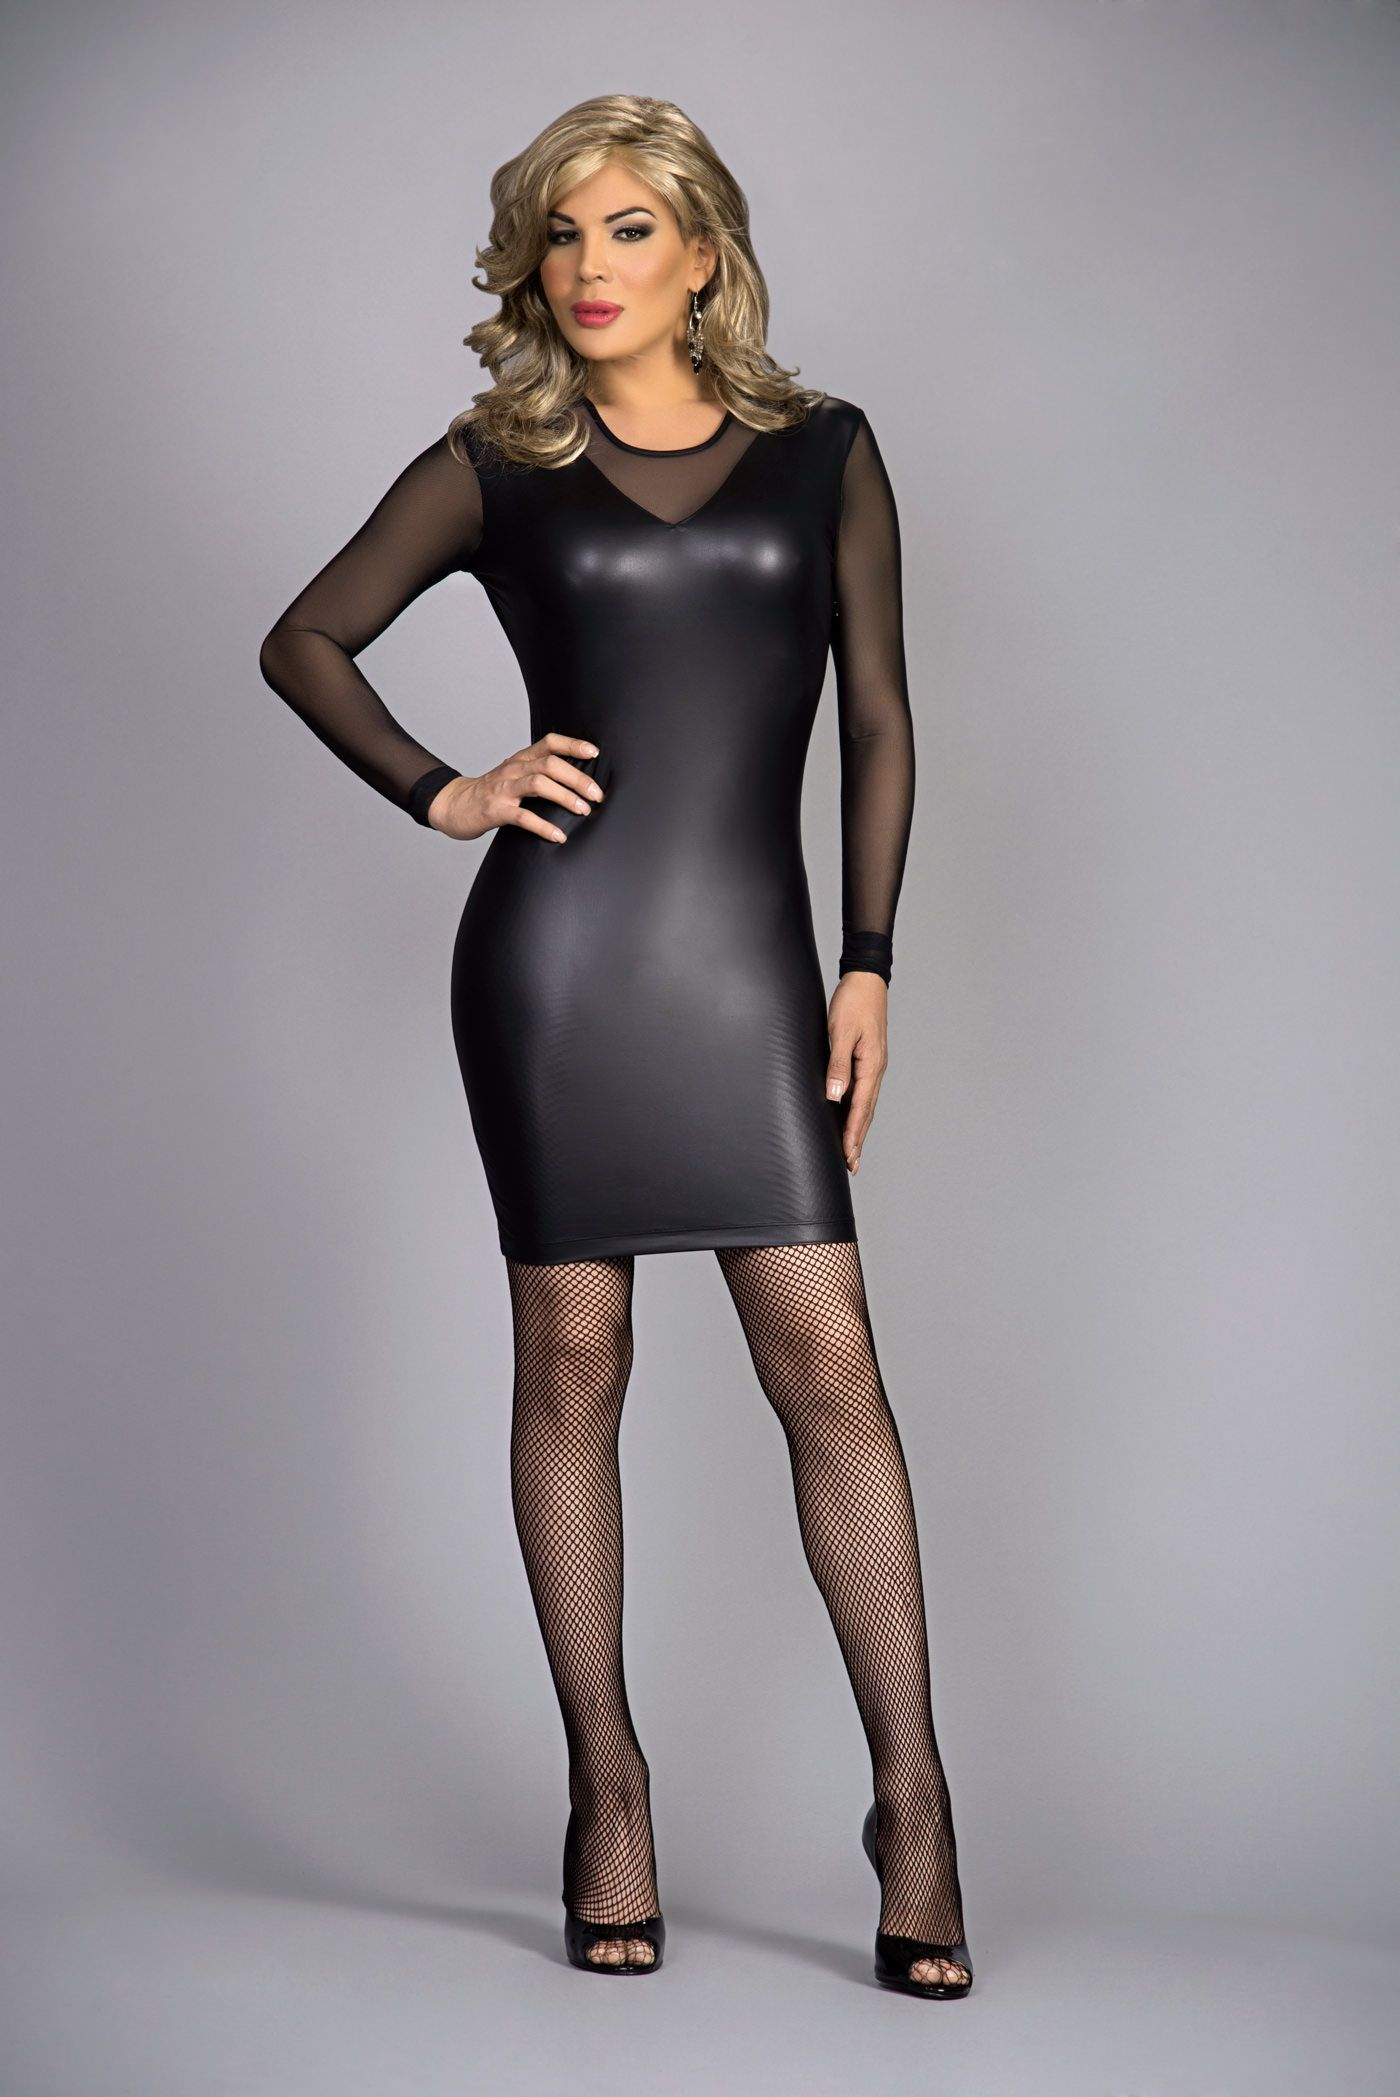 Sexy Leather Dresses -12 Stylish ways to Wear Leather Dress forecasting